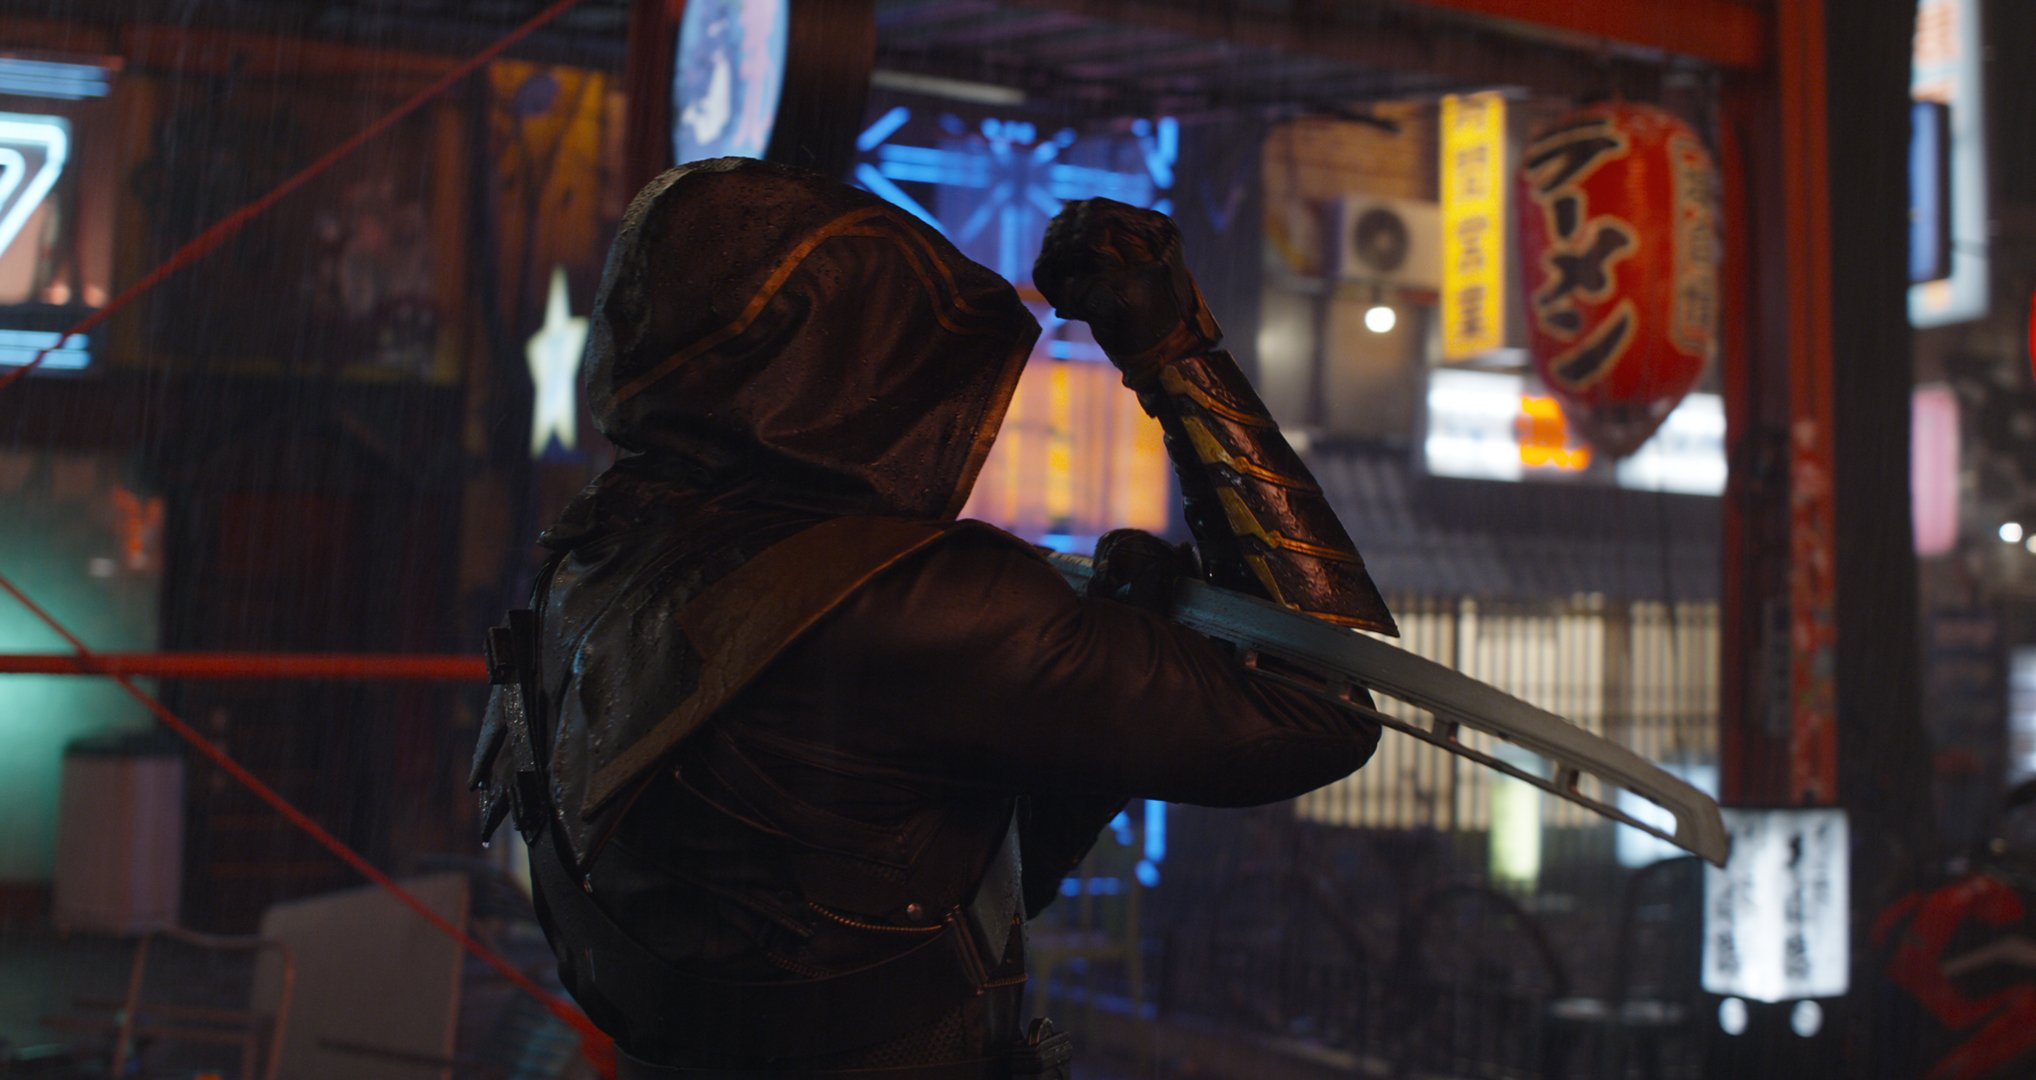 Photo du film Avengers: Endgame avec Ronin (Jeremy Renner)